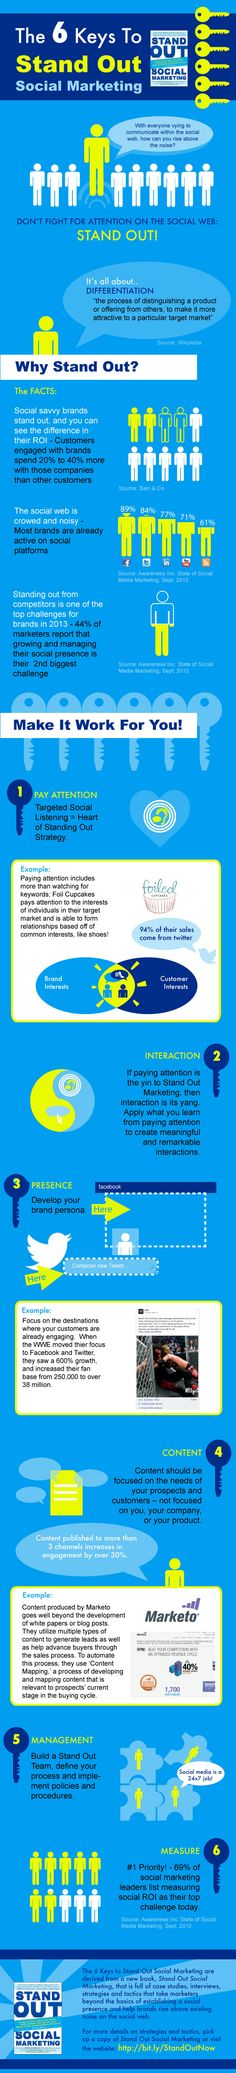 The 6 Keys To Stand Out In Social Media Marketing #Infographic #socialmedia #sm #in